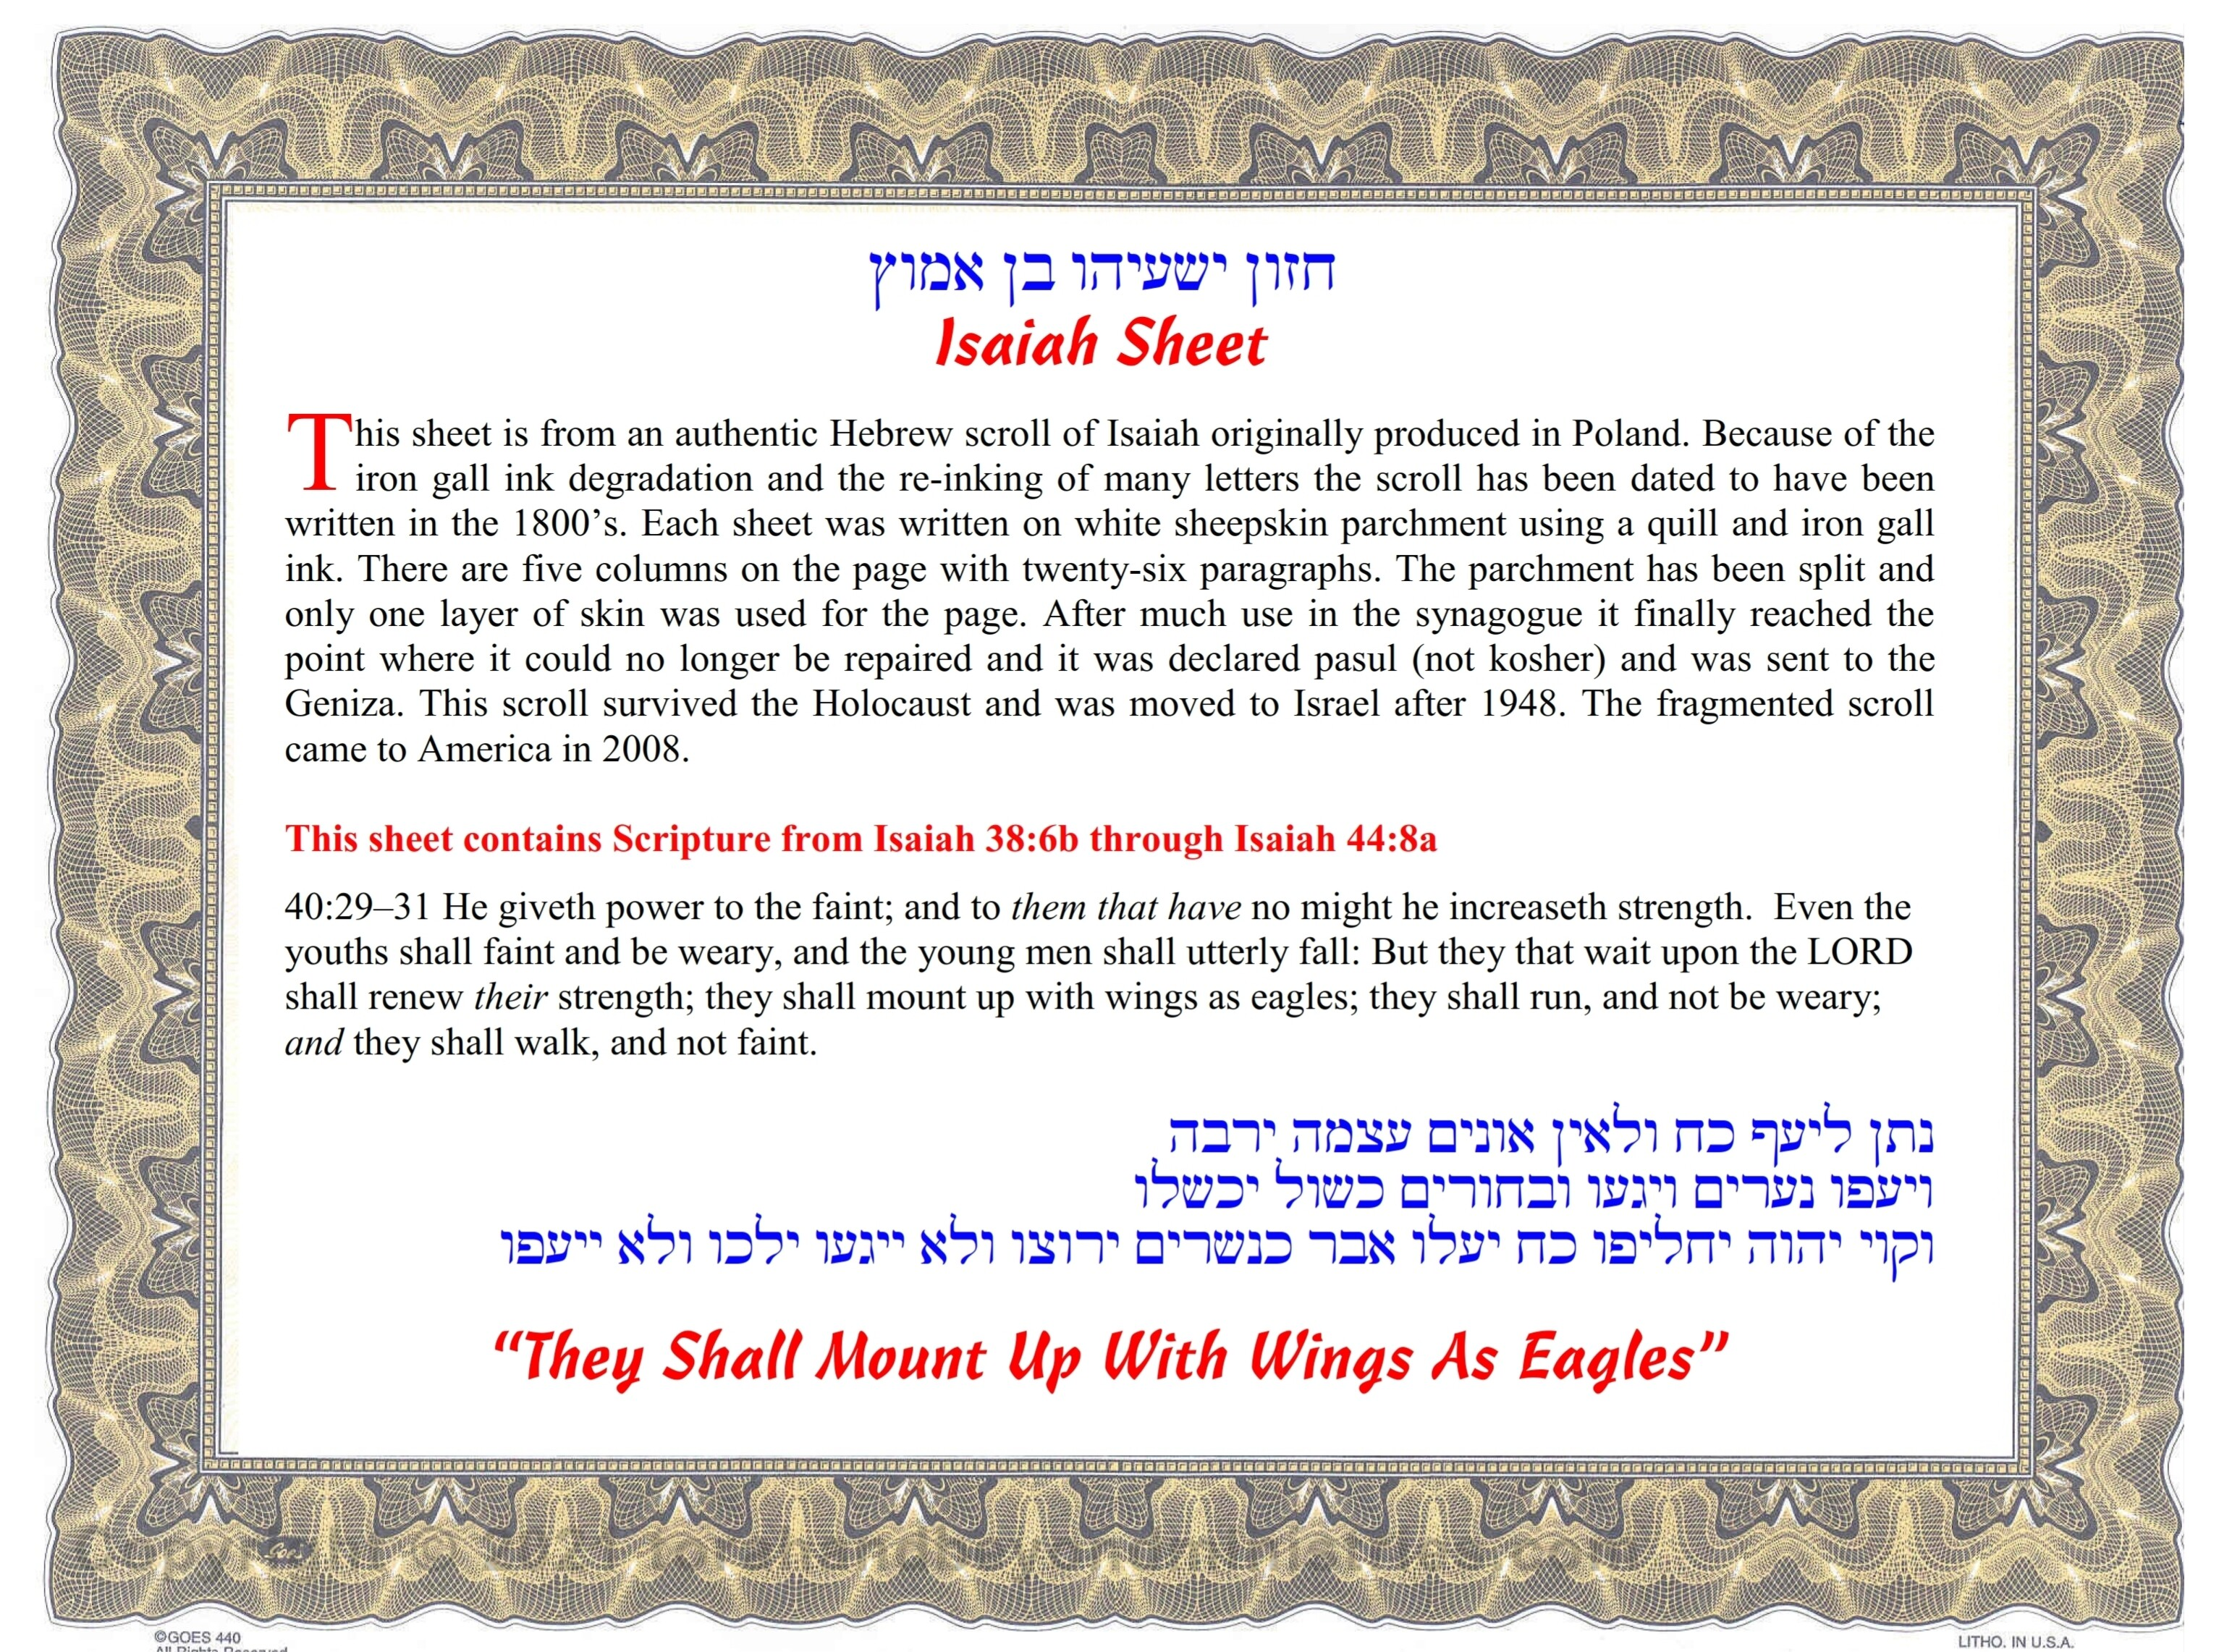 certificate of authenticity on Isaiah Scroll